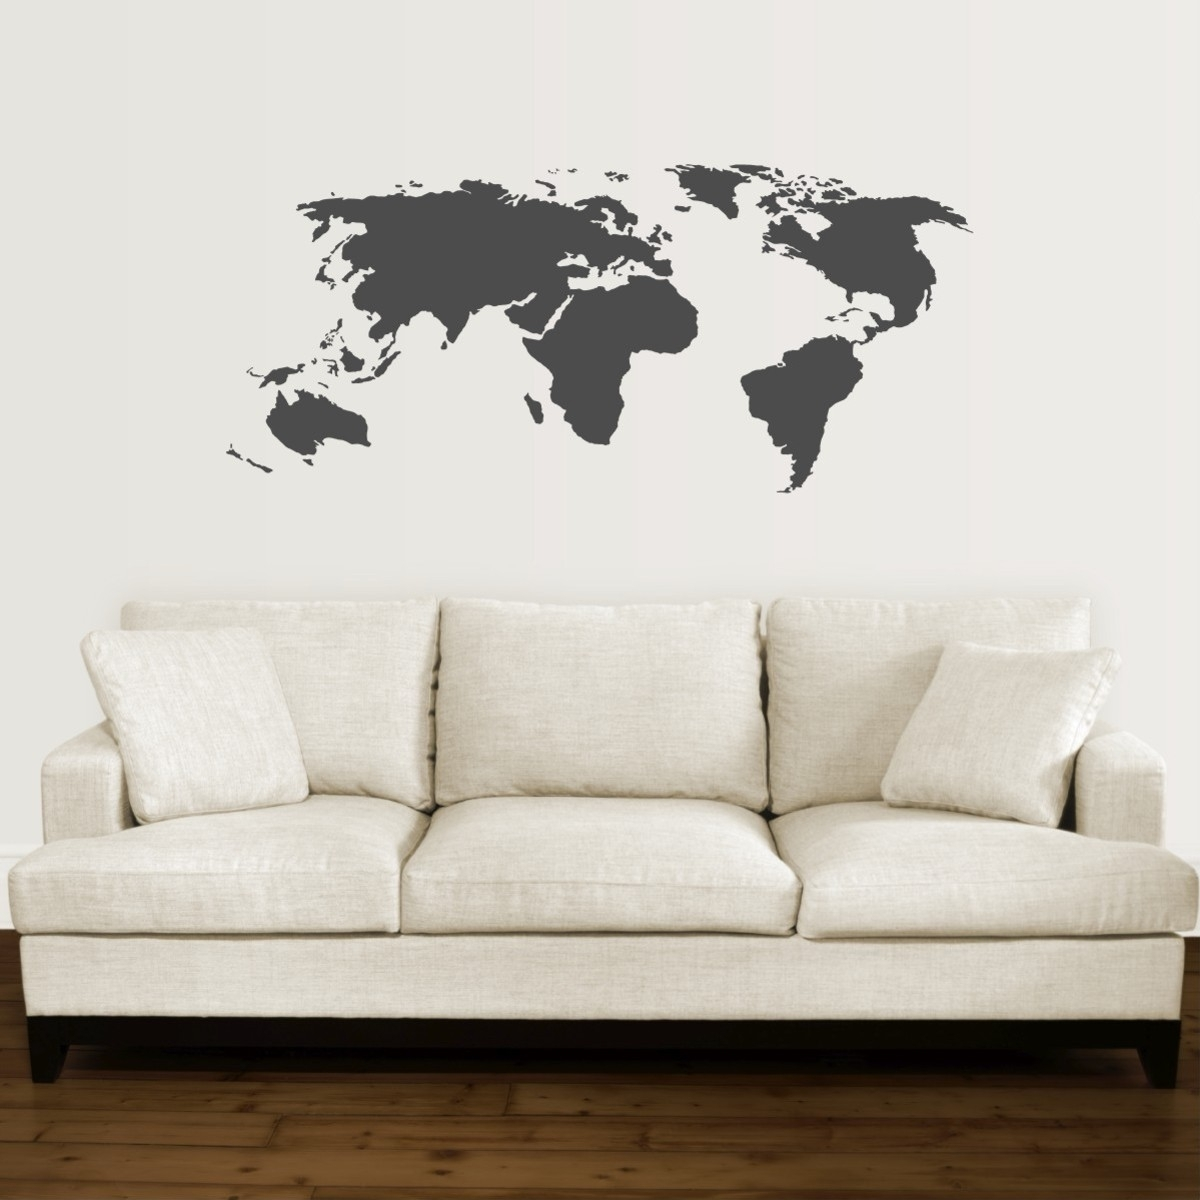 17 Cool Ideas For World Map Wall Art – Live Diy Ideas Inside Most Up To Date World Map Wall Art (Gallery 9 of 15)